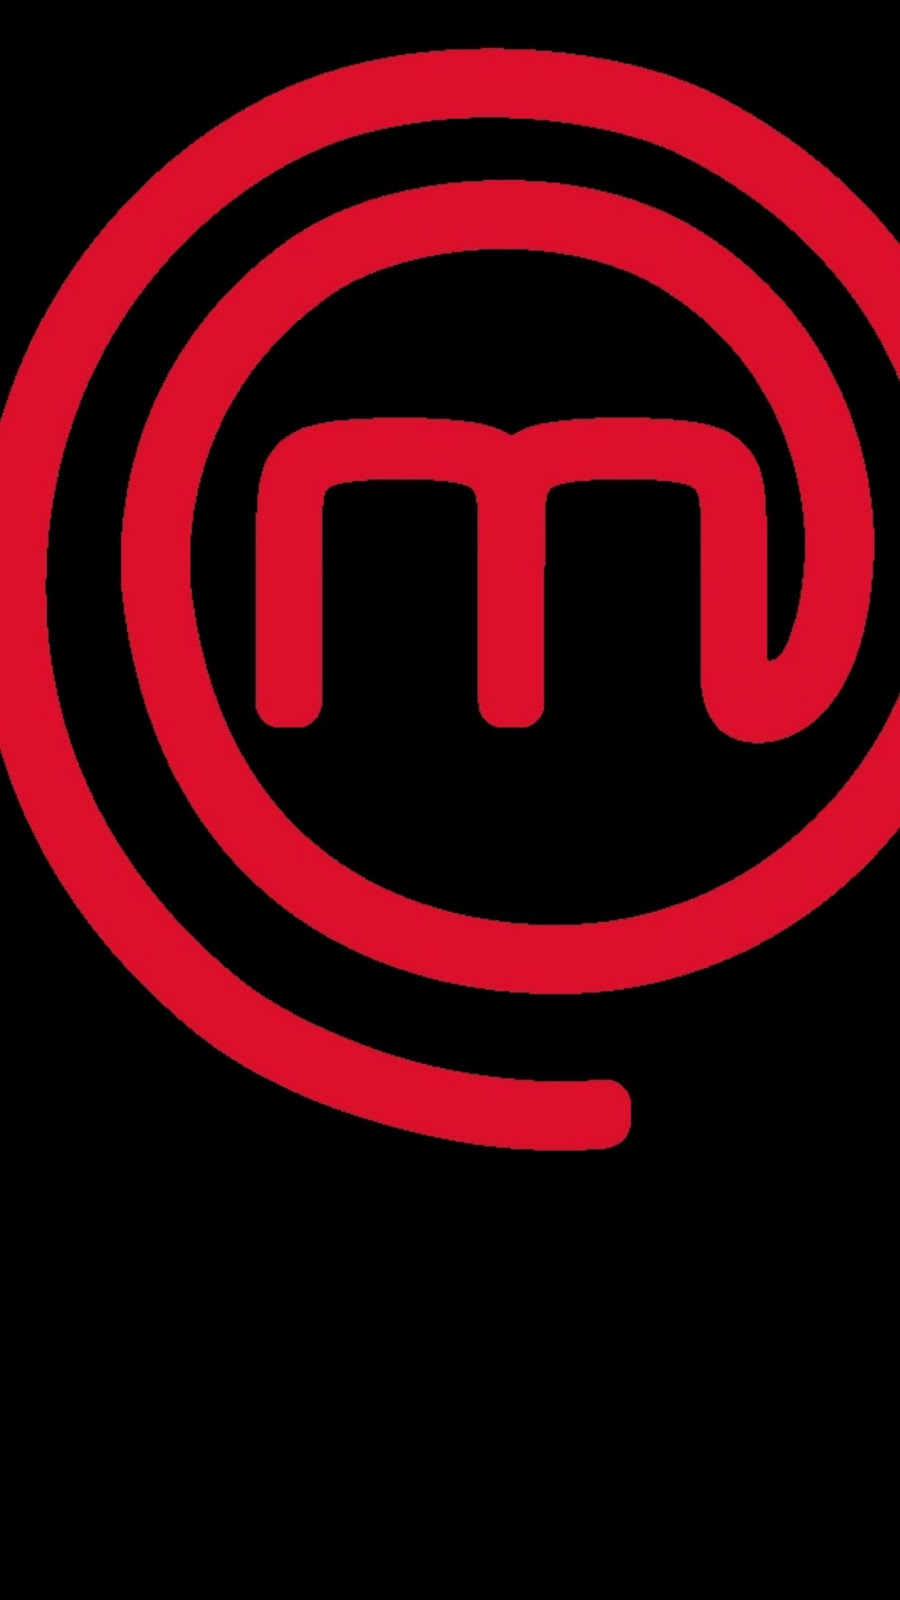 Download Masterchef Reality Show Food 3840x2400 Resolution Full